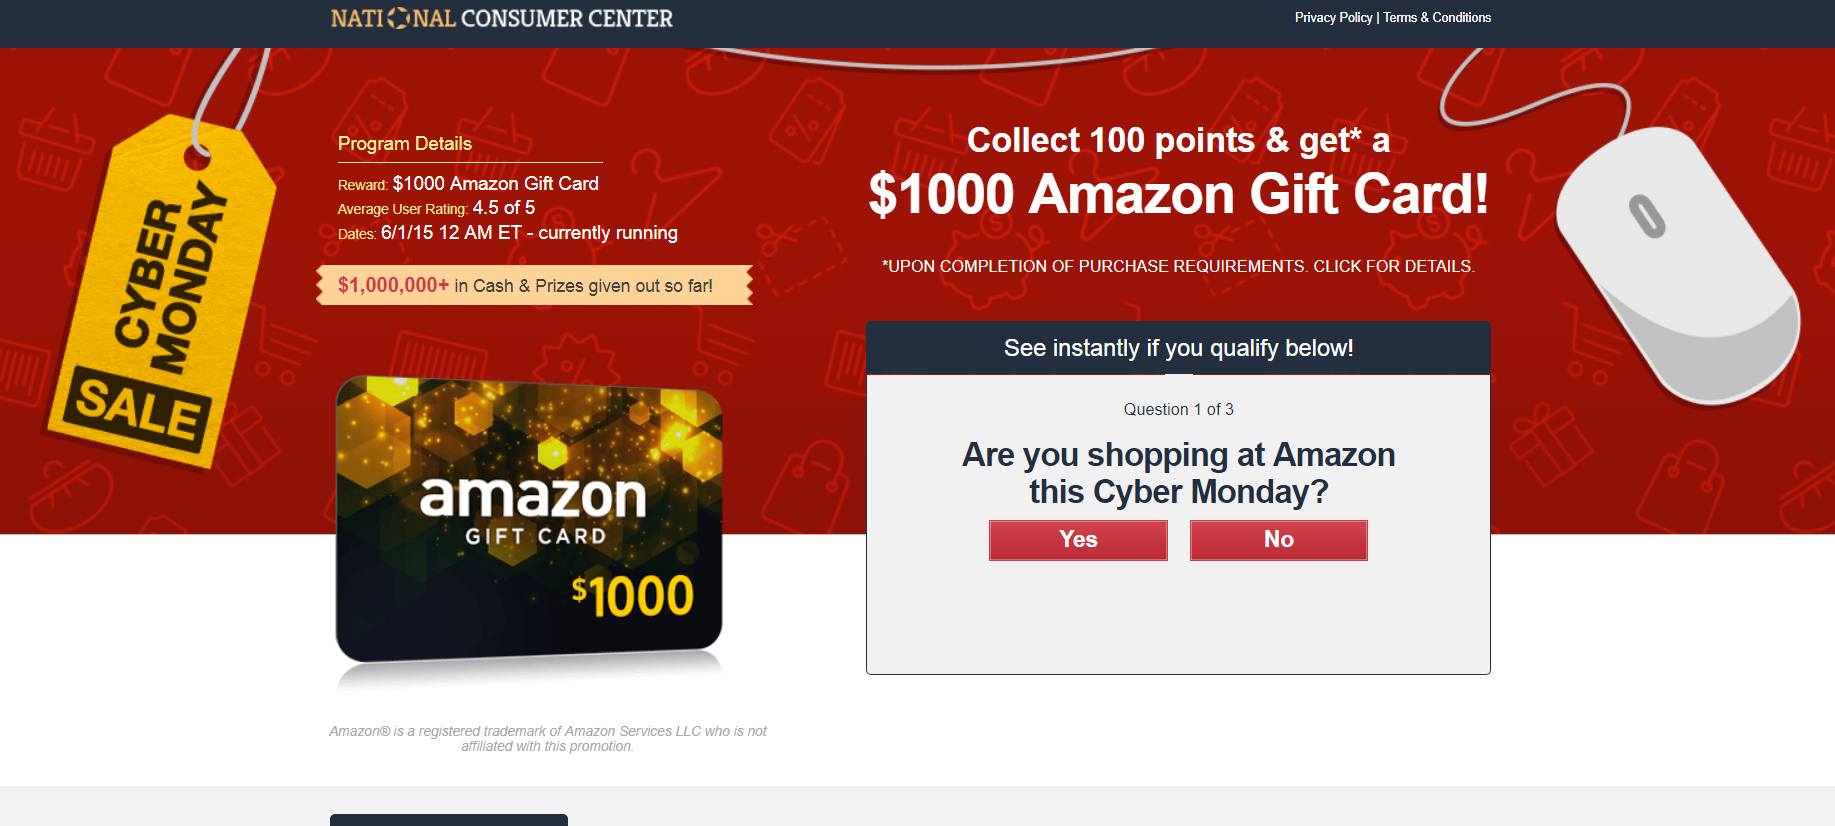 Get A 1000 Amazon Gift Card Amazon Gift Cards Amazon Gifts Gift Card